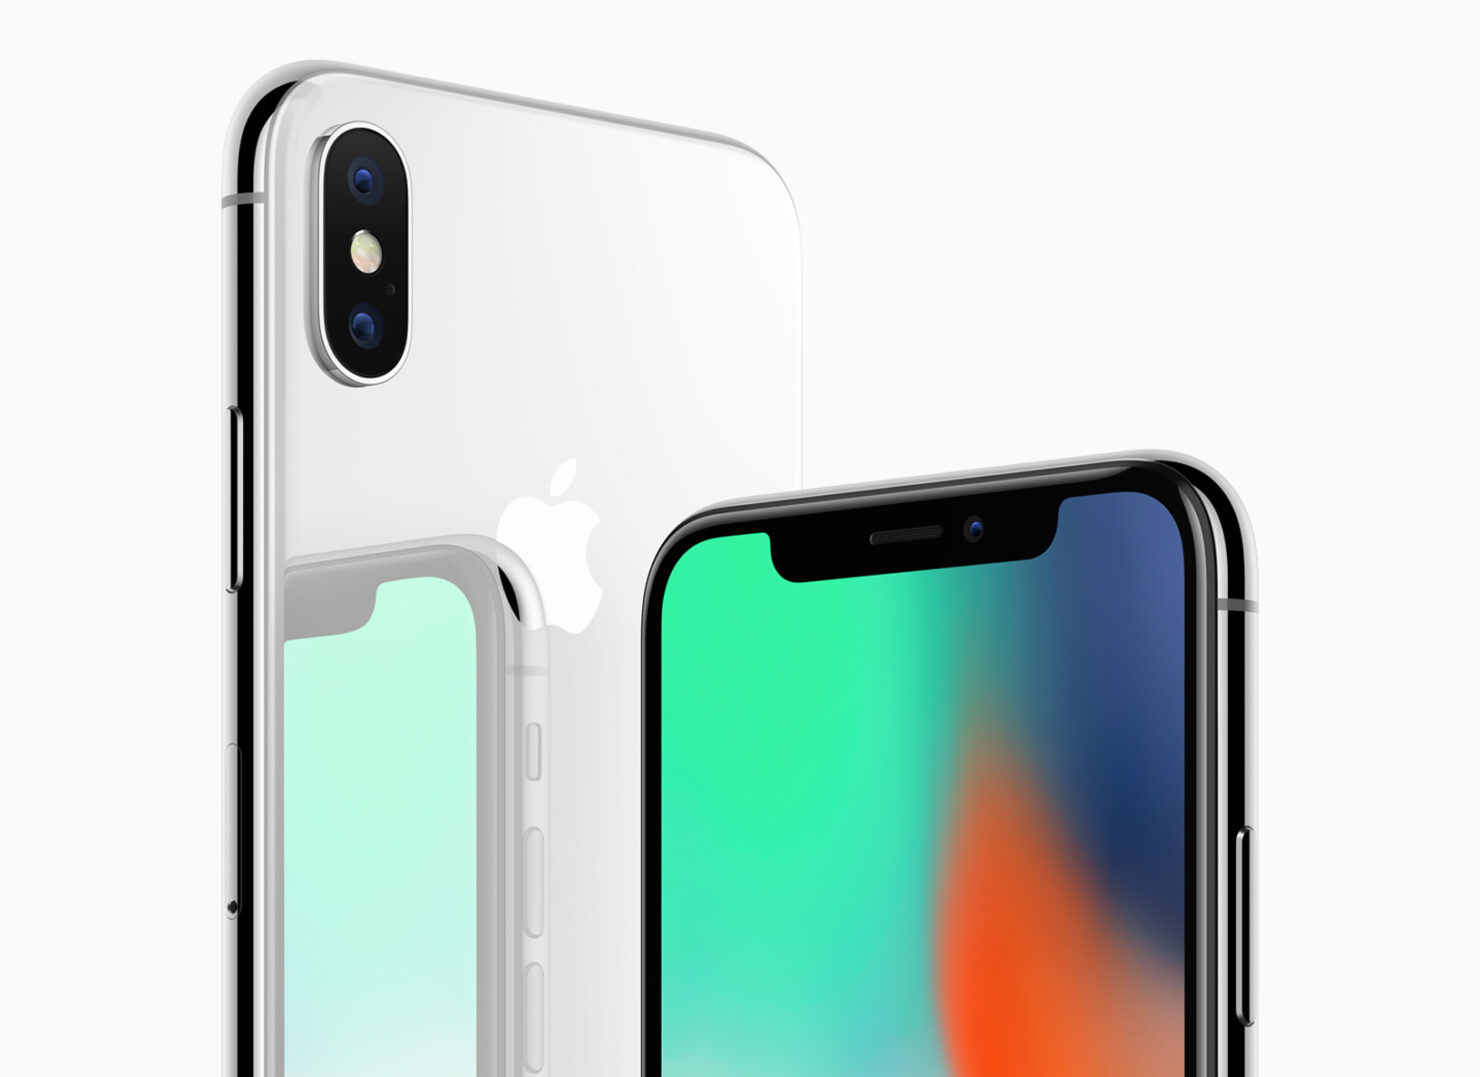 iPhone X Successors to Feature More RAM and Battery Capacities Thanks to New Logic Board Design